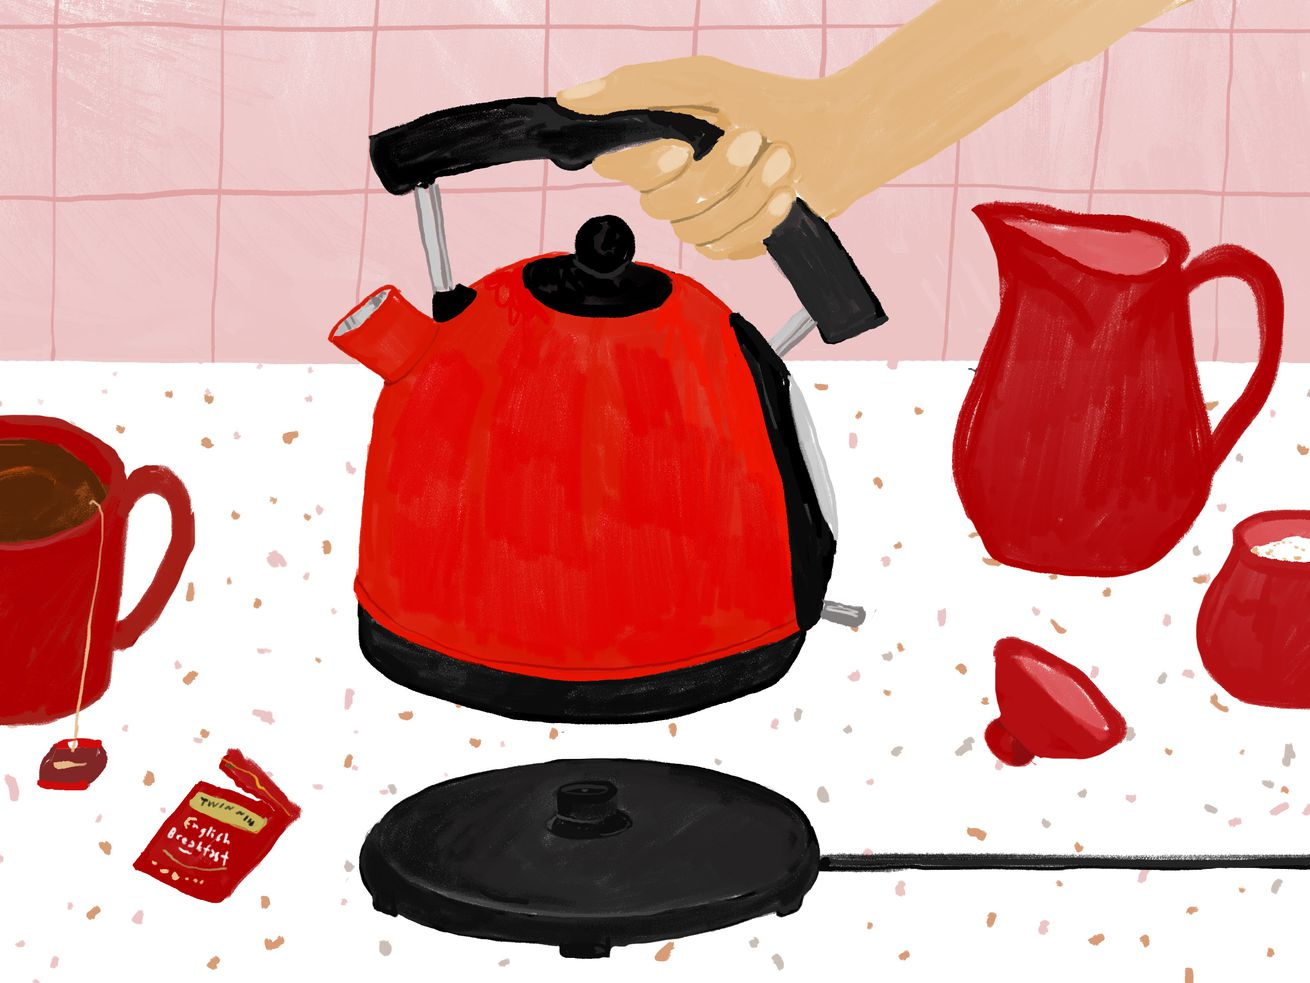 Illustration featuring red kitchen accessories on speckled white countertops, with a pink backsplash.